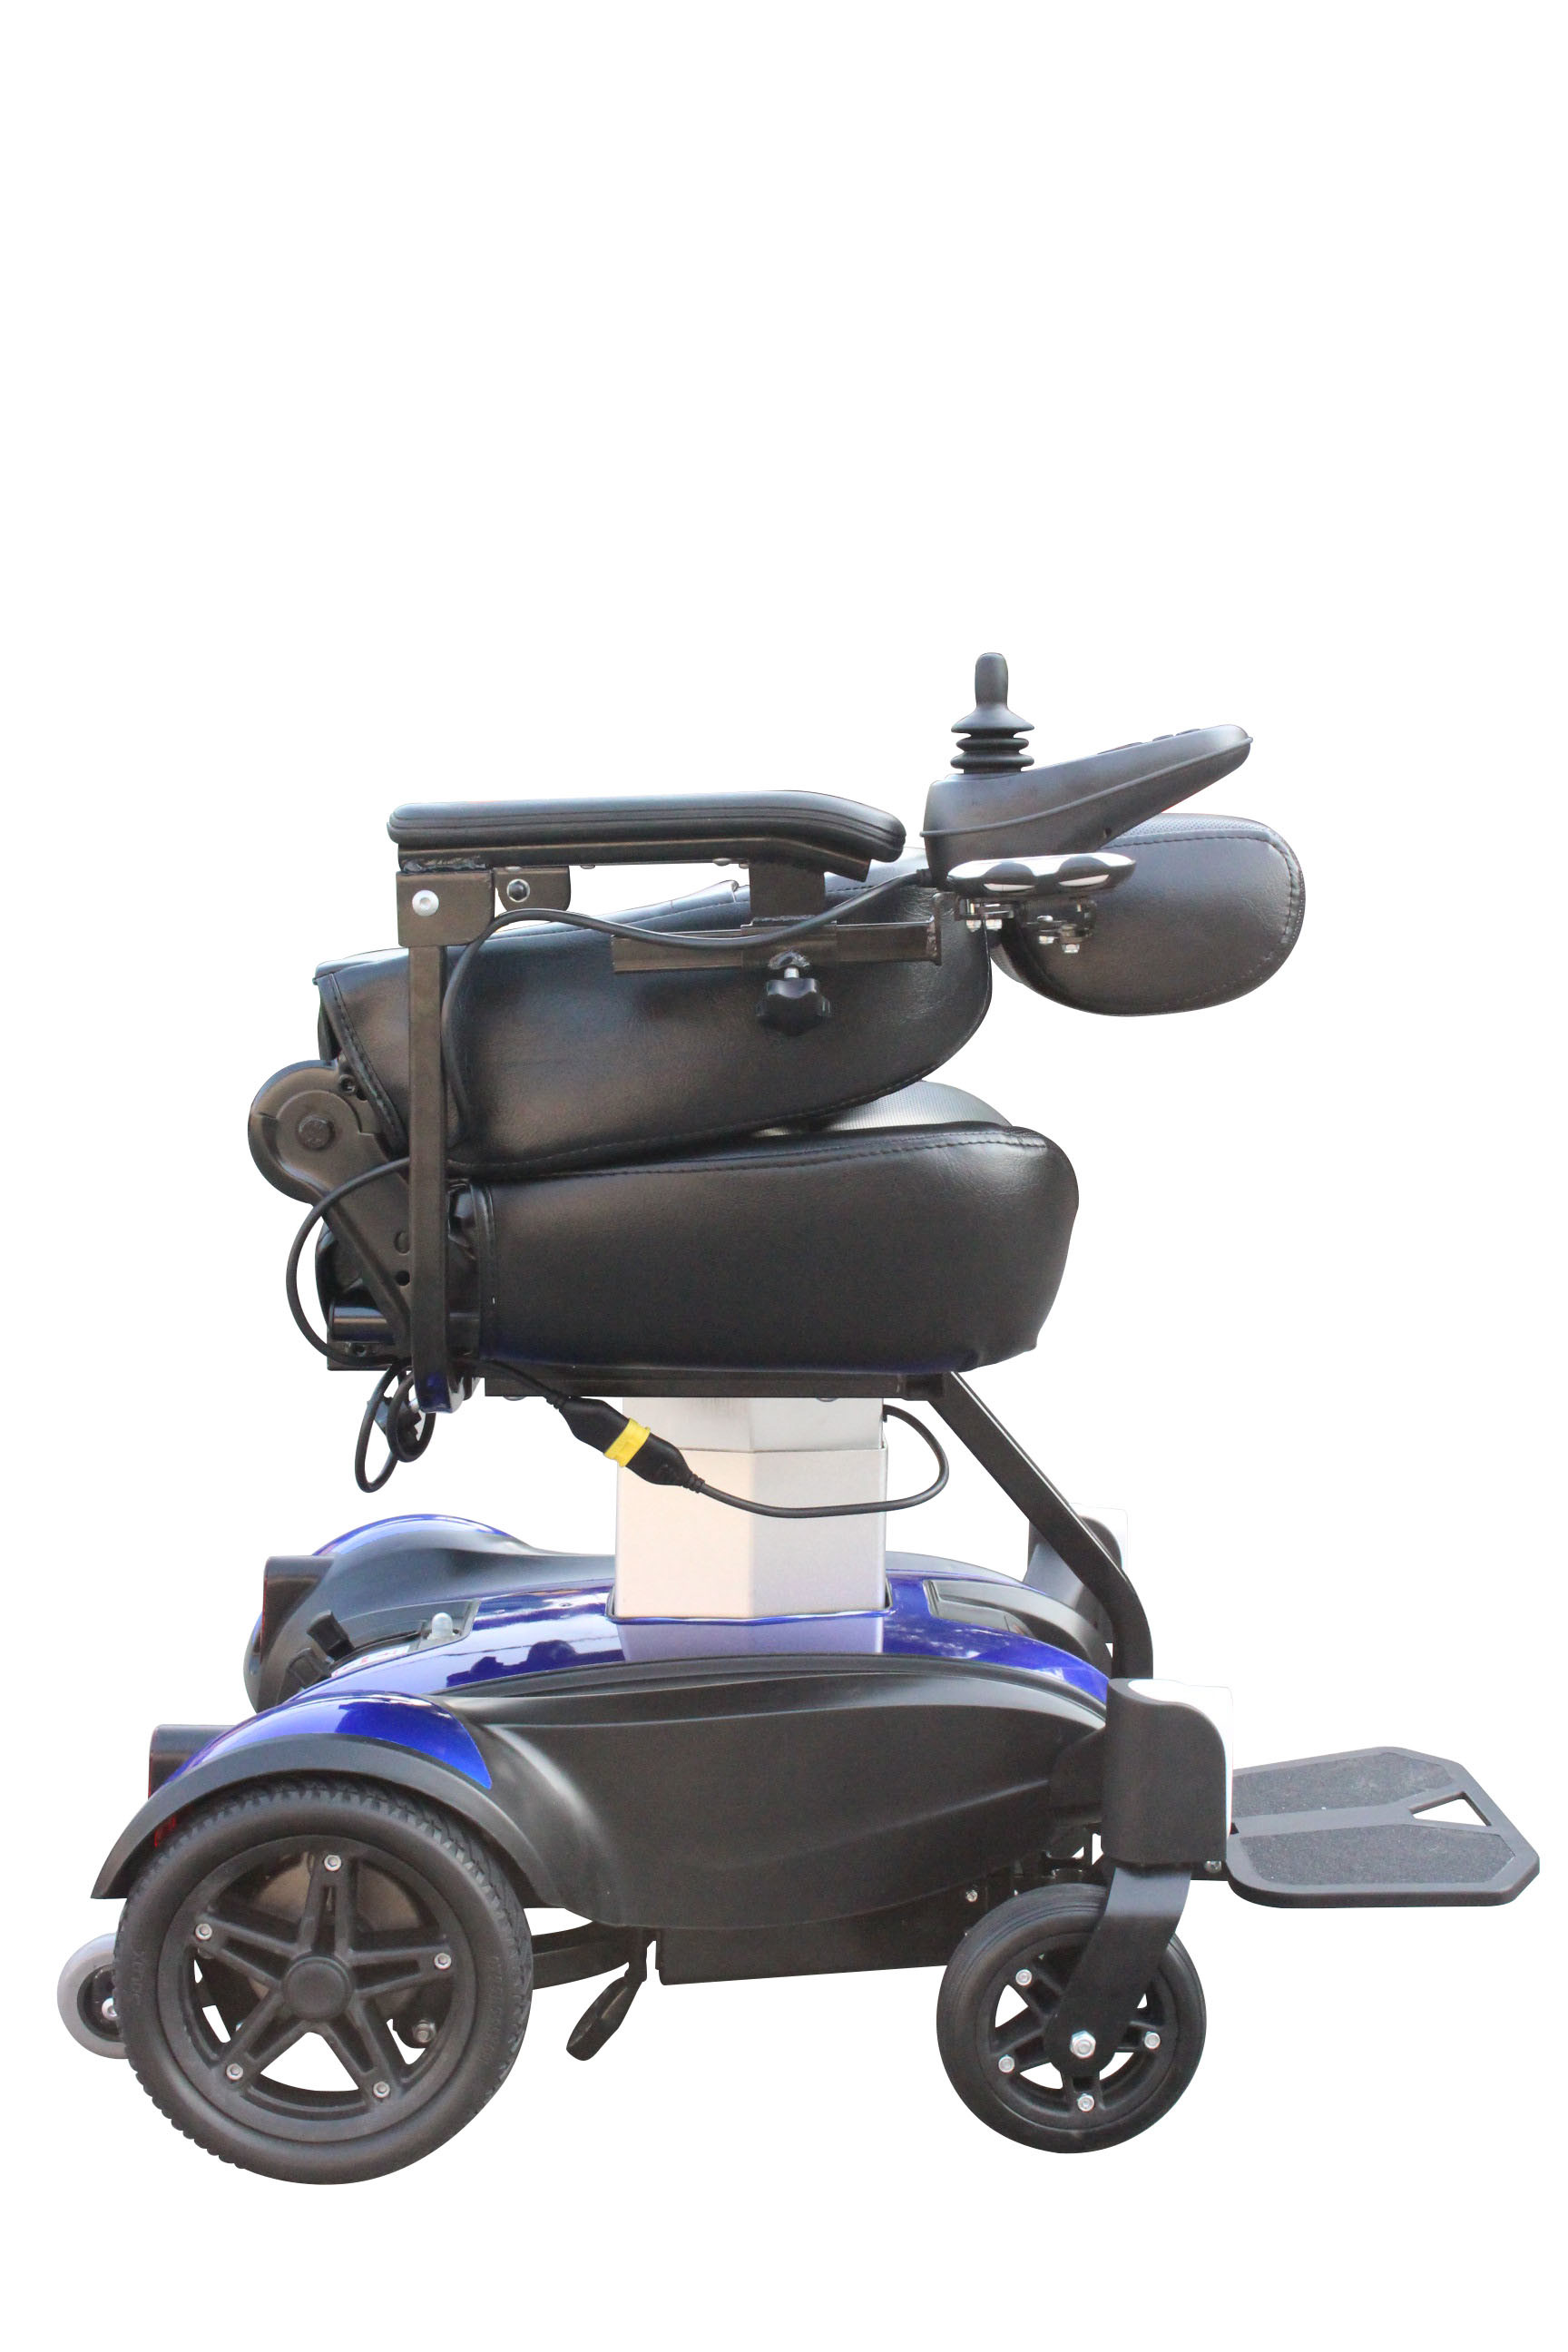 vehicle lifts for power wheelchairs folding chairs wholesale los angeles china solax auto remote lift wheelchair photos